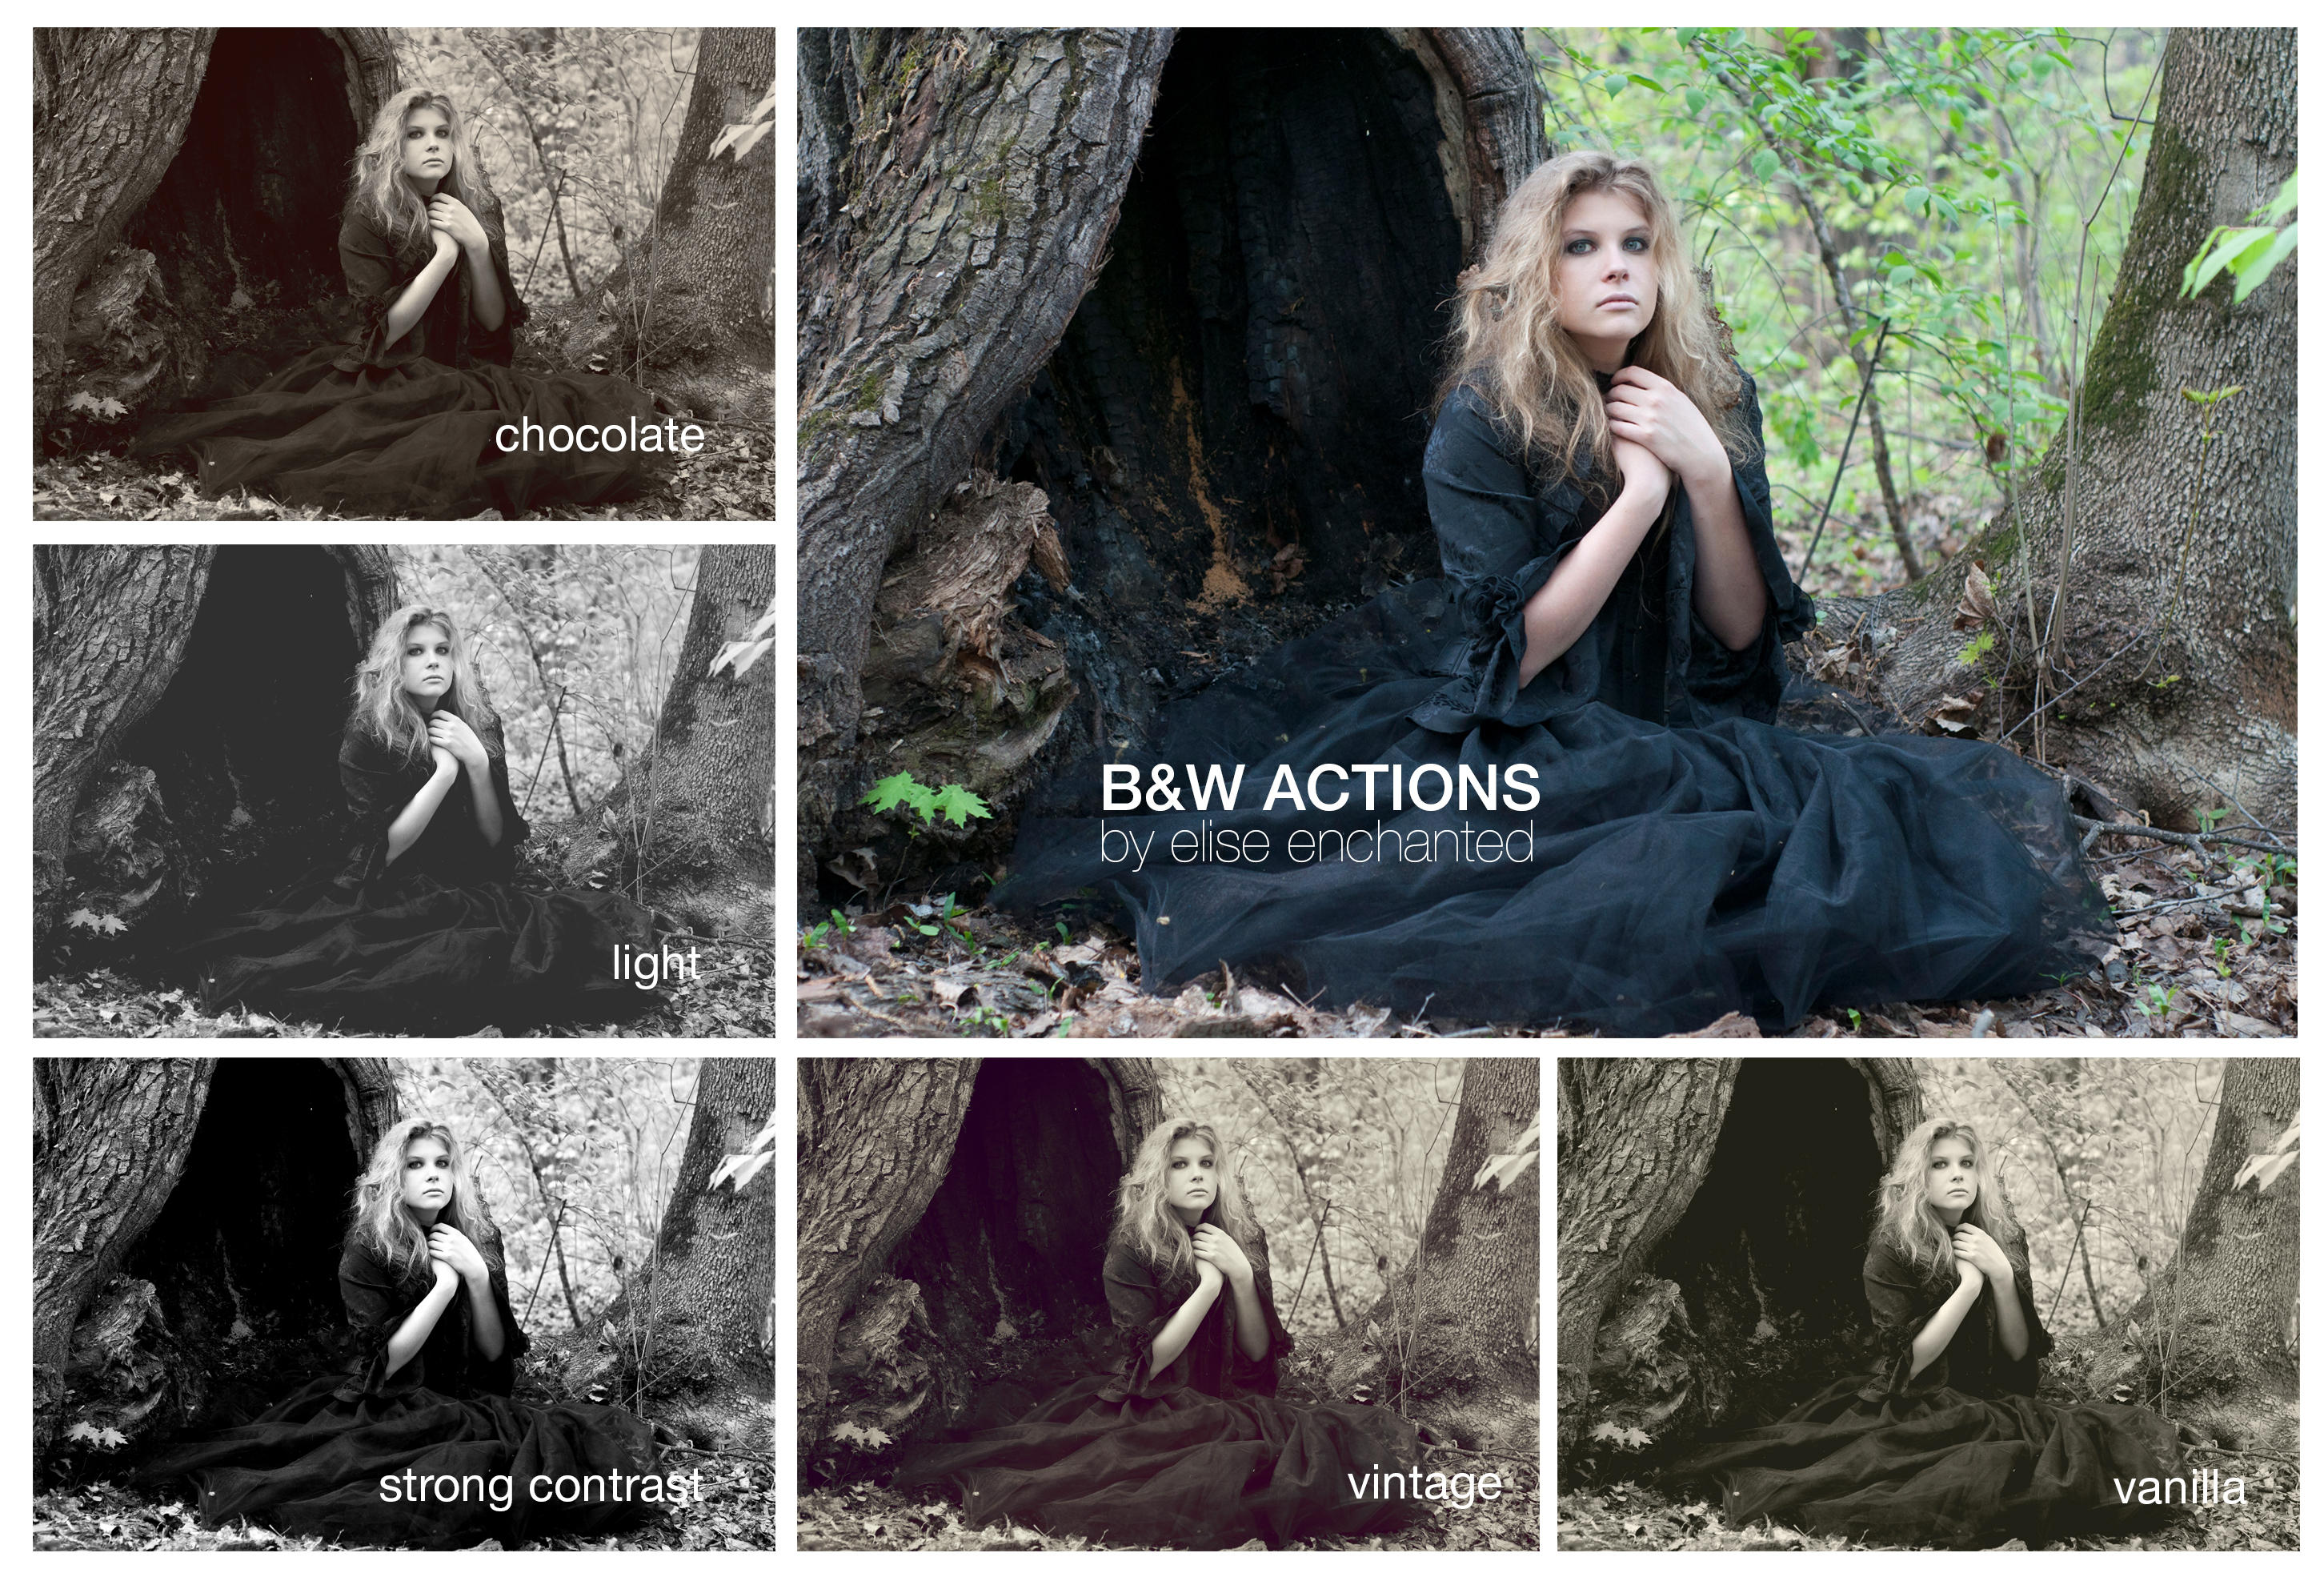 B/W actions by EliseEnchanted